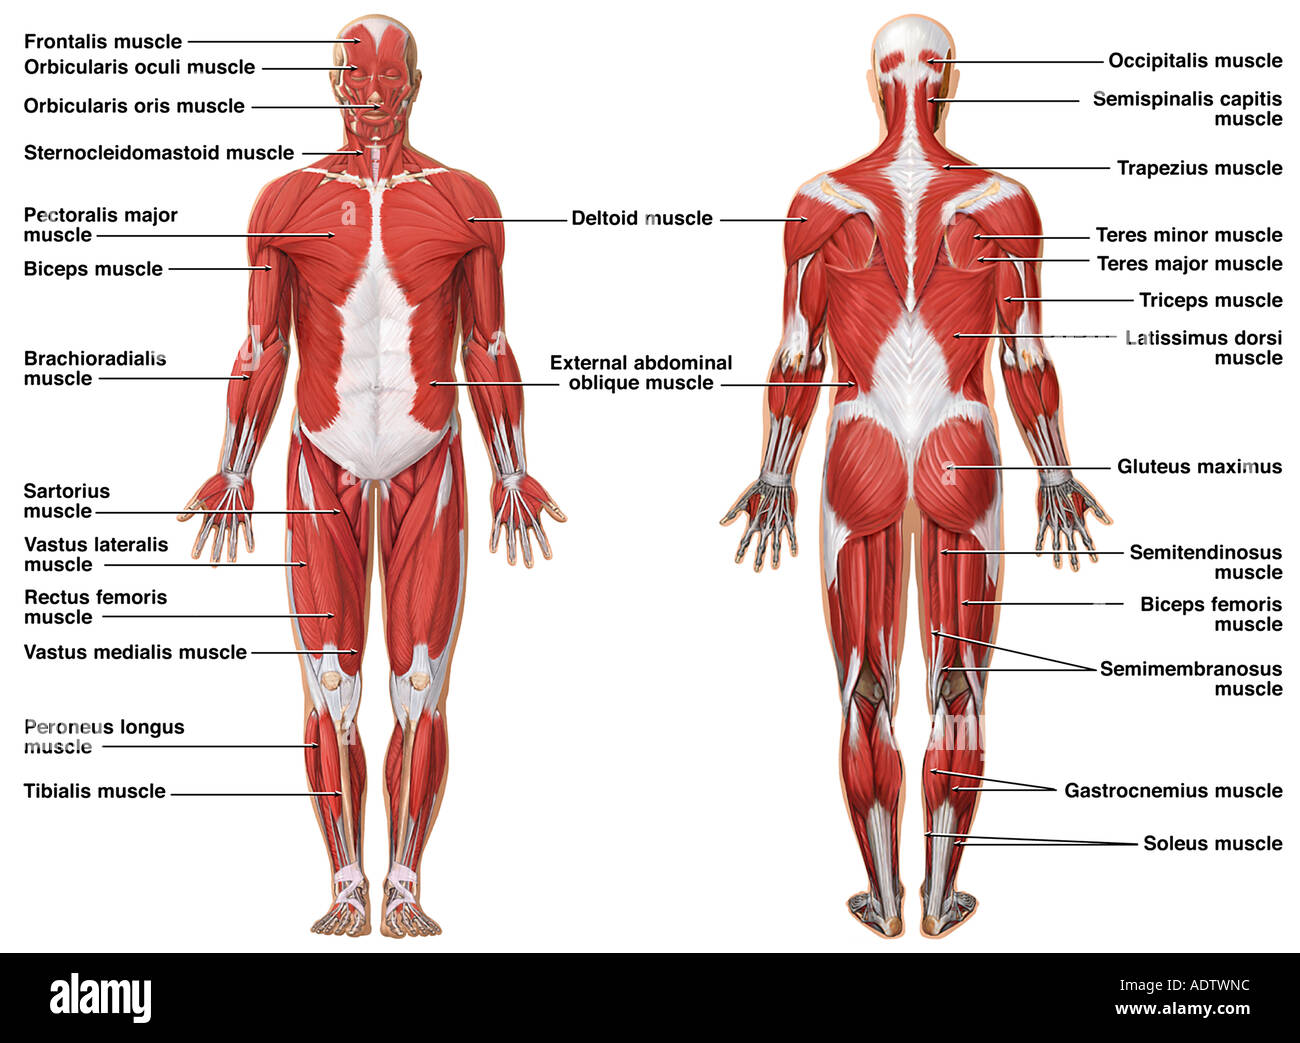 Anatomy of the Muscular System Stock Photo: 7710491 - Alamy